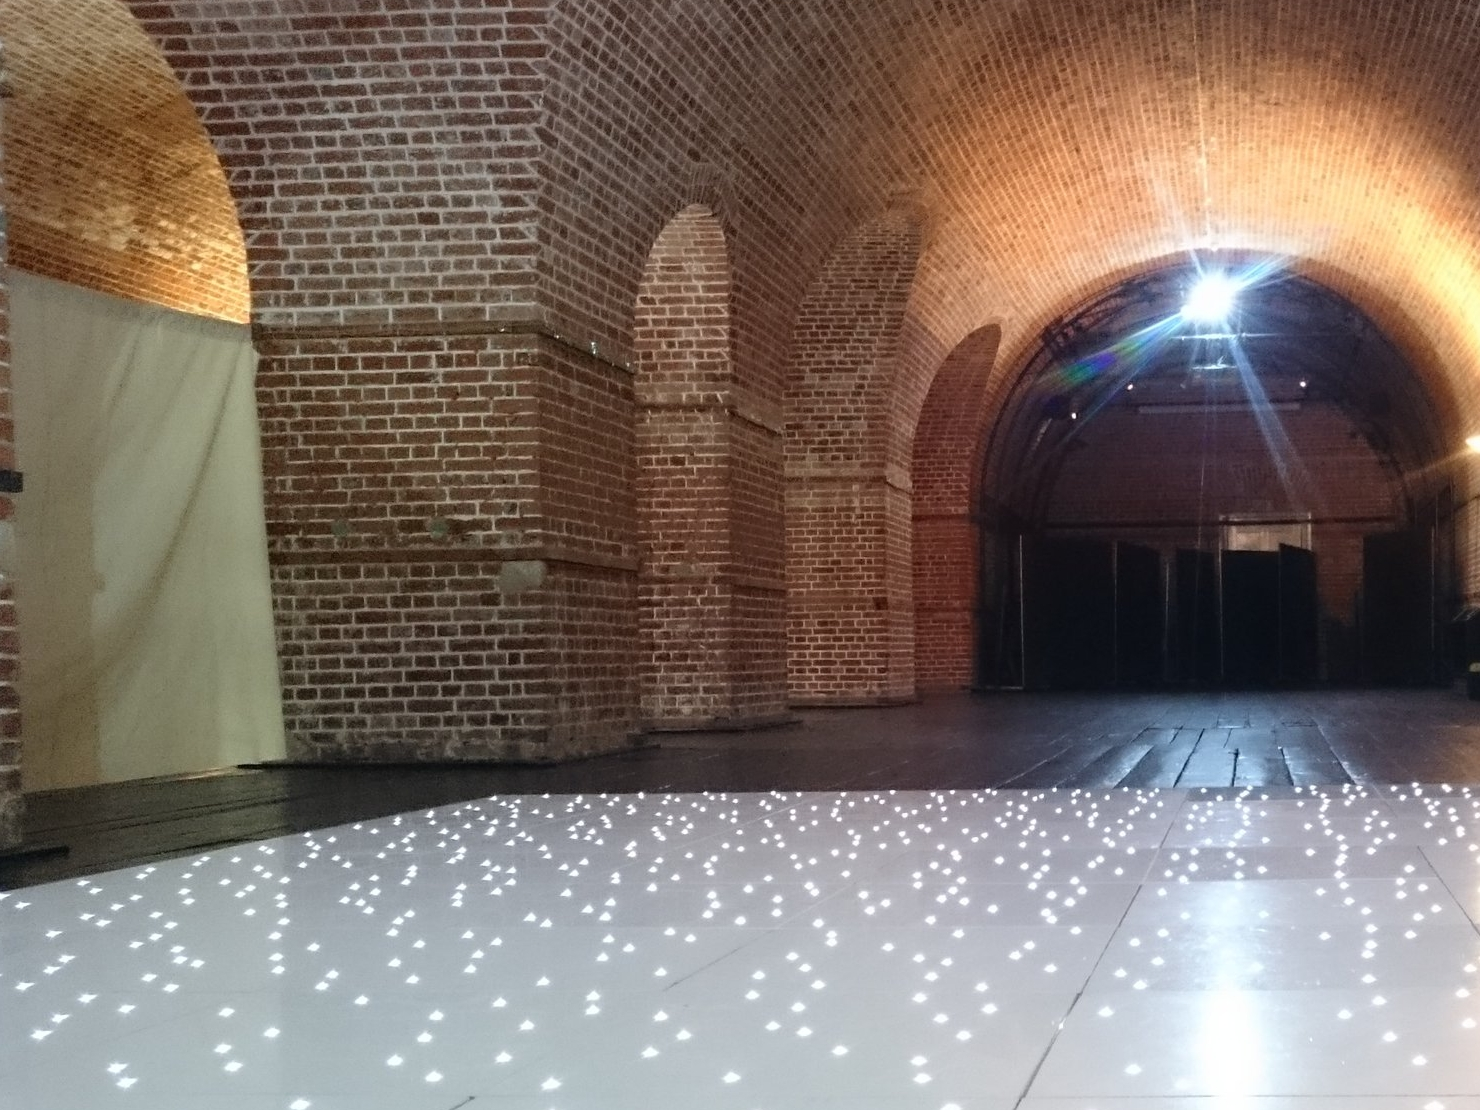 led-dancefloor-hire-at-explosion-museum-gosport-hampshire.jpg